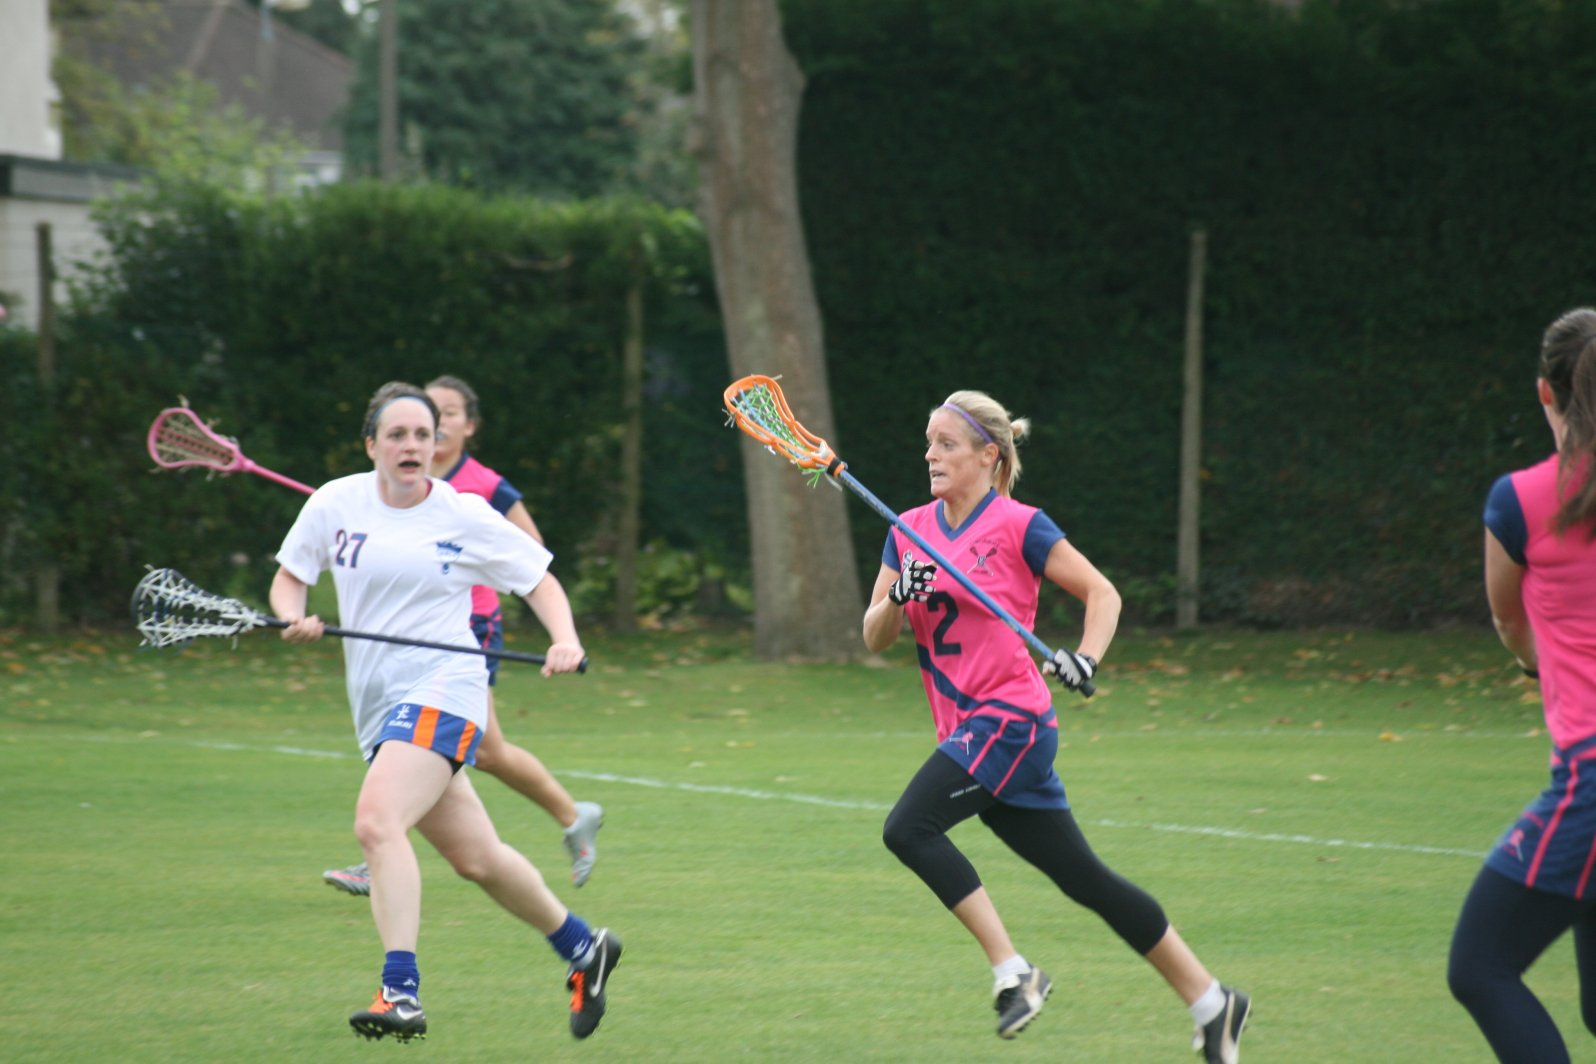 SEWLA League - Fixtures, results and tables for the South East Women's Lacrosse Association